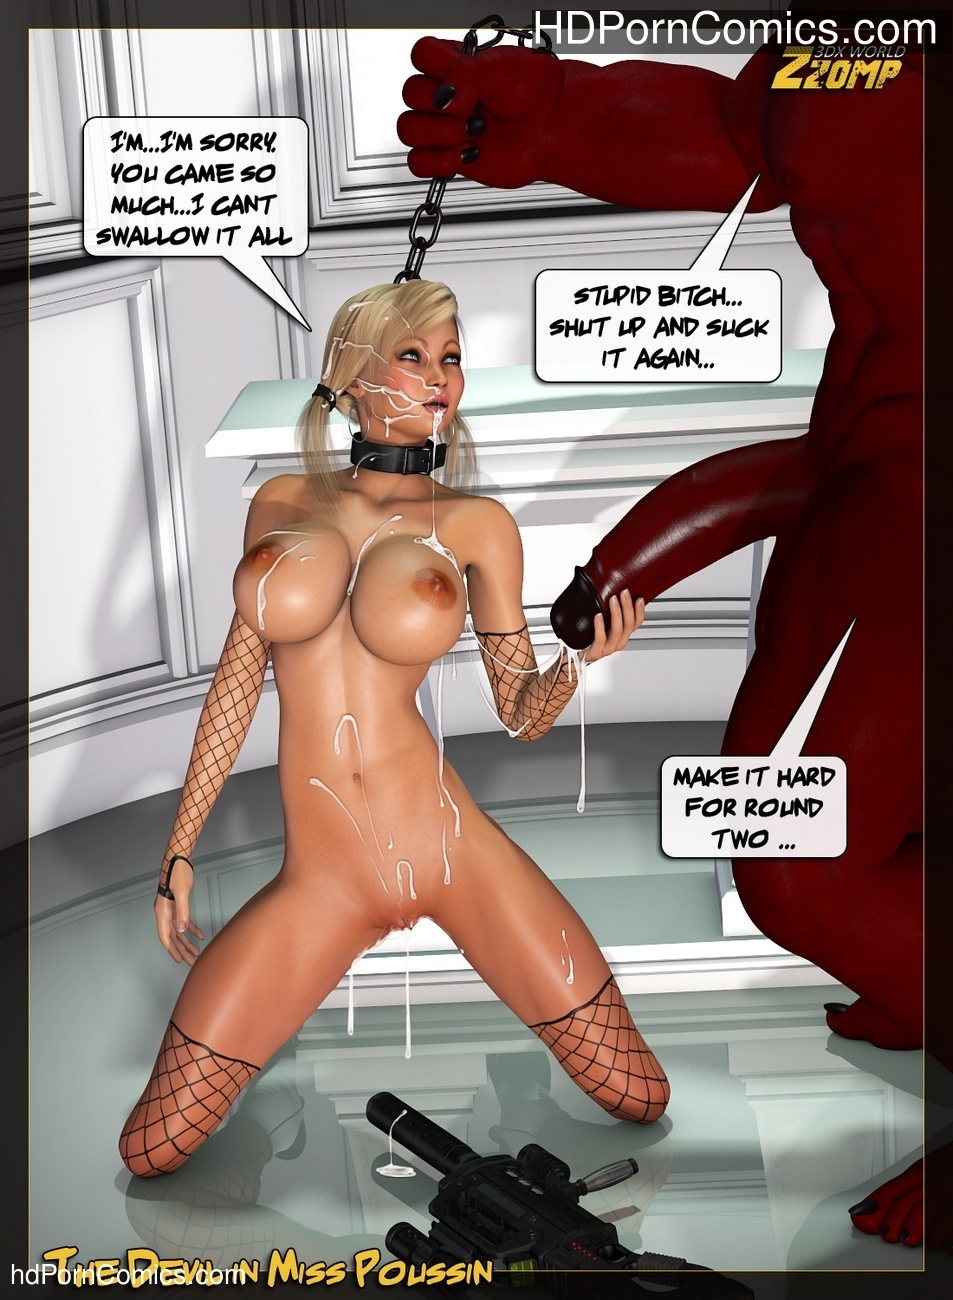 The Devil In Miss Poussin Sex Comic